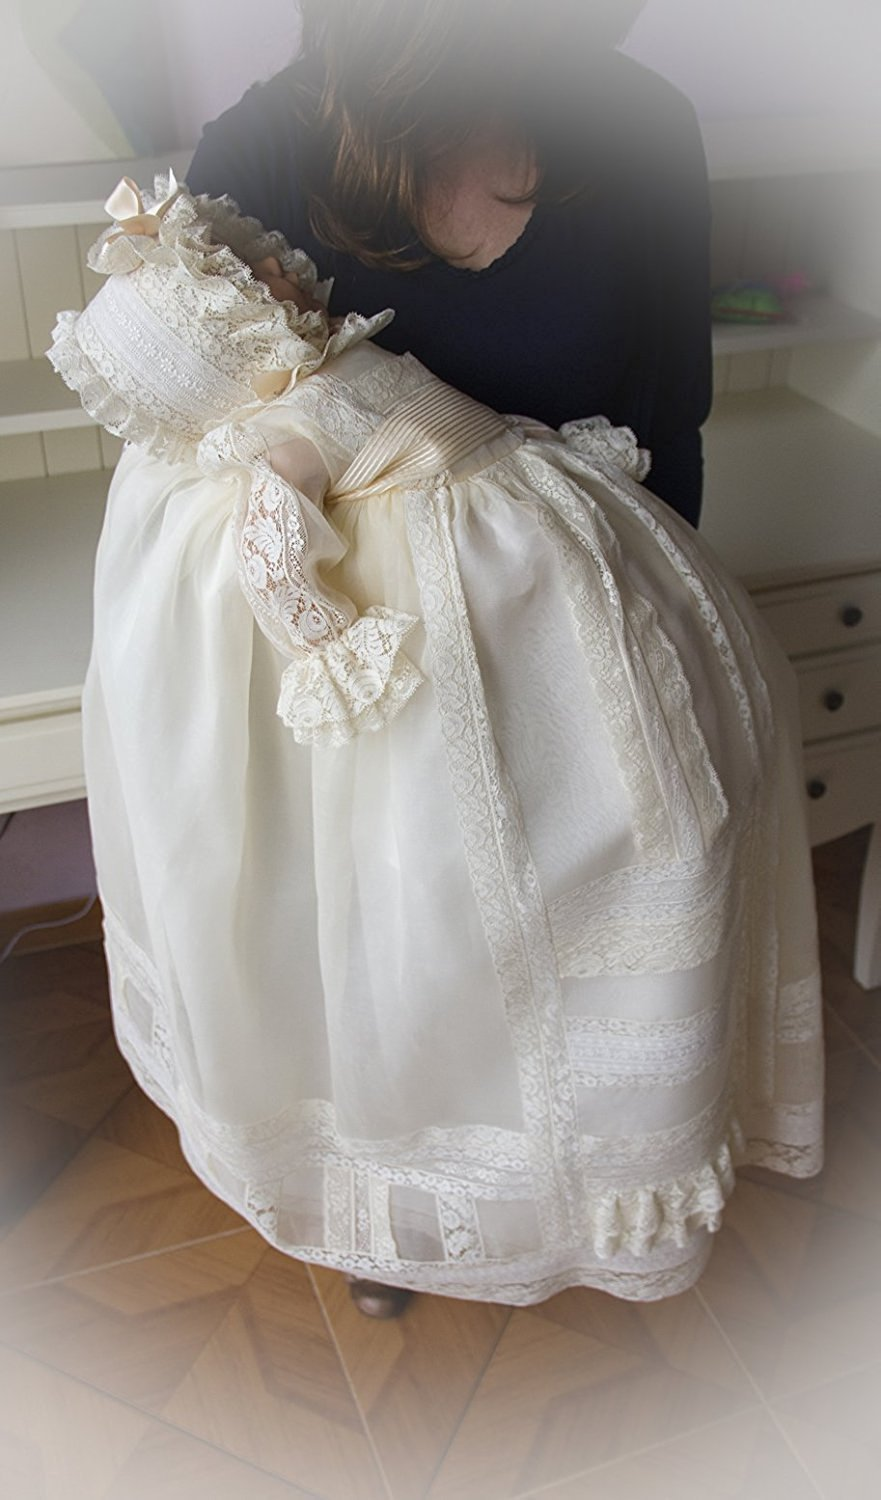 Banfvting Lace Long Baby Girls Dress Christening Gowns With Sleeves by Banfvting (Image #3)